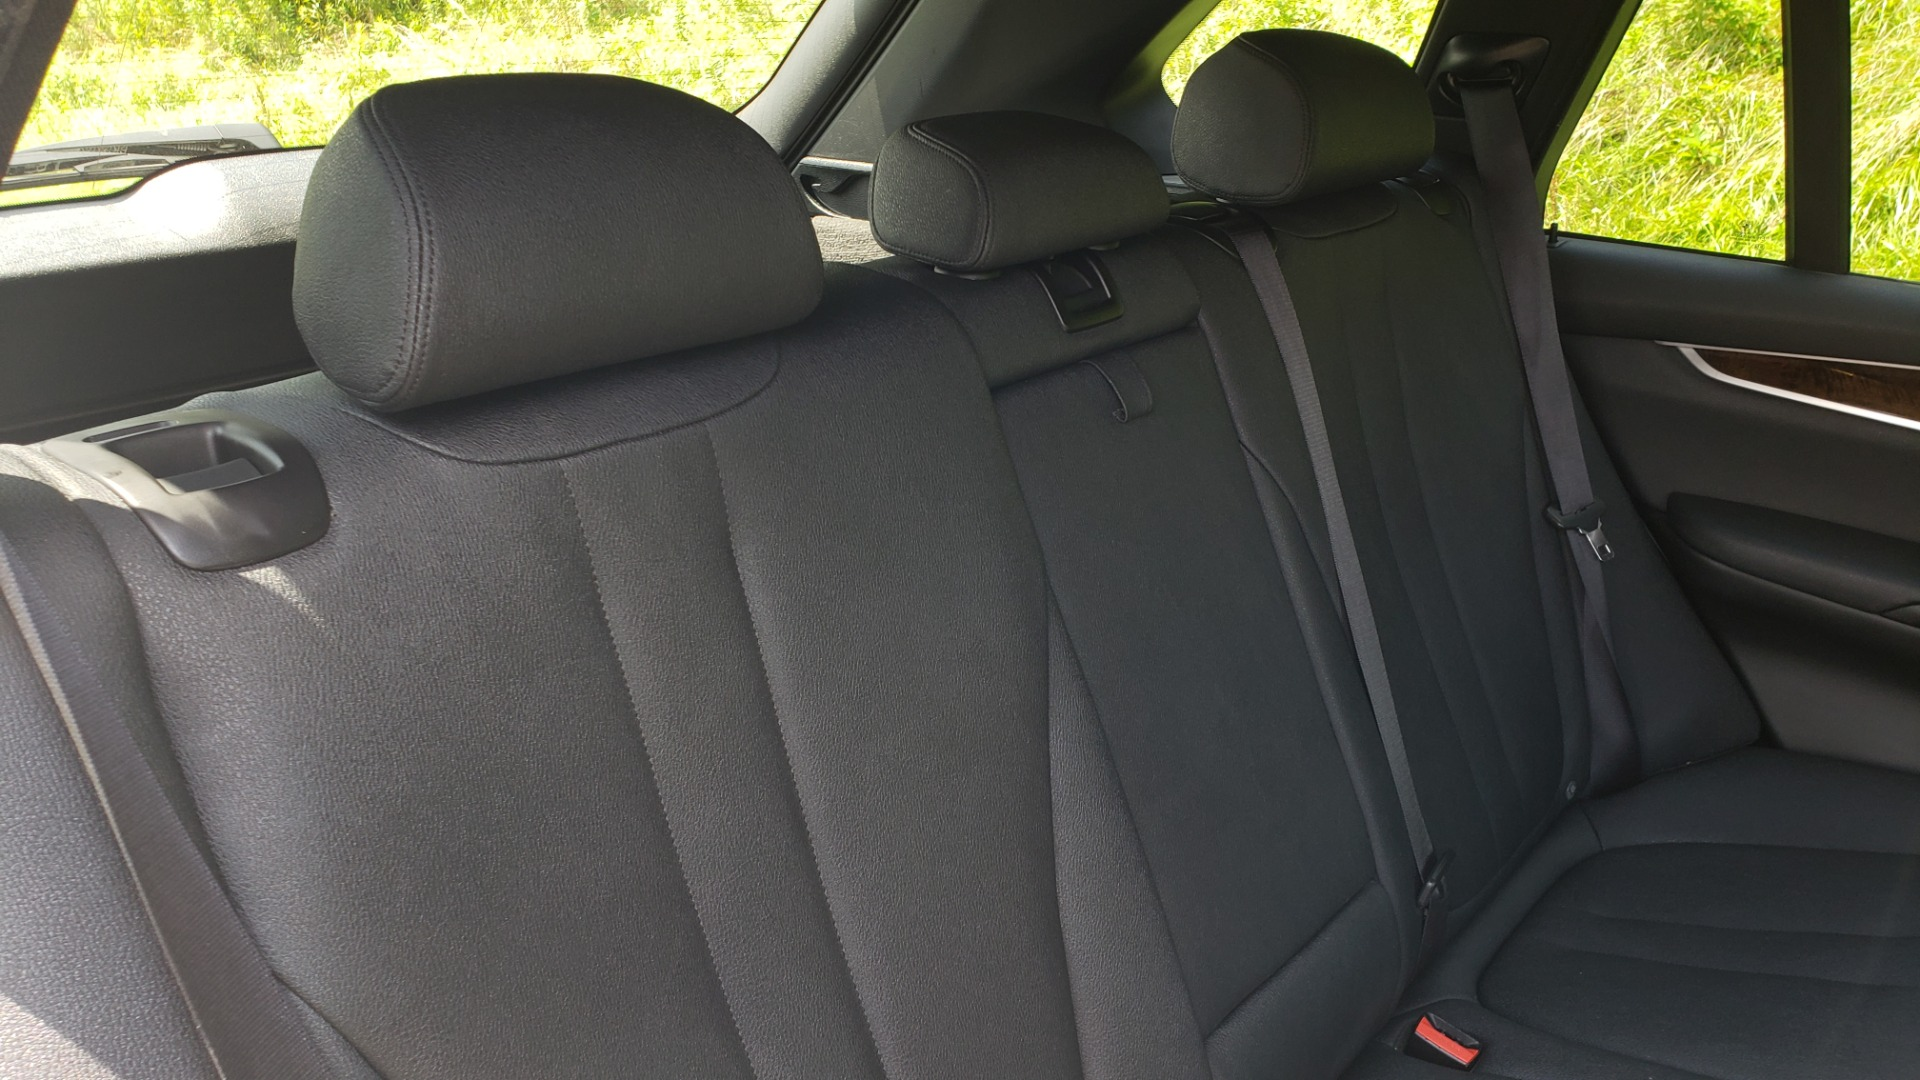 Used 2017 BMW X5 XDRIVE35I / NAV / SUNROOF / RUNNING BOARDS / REARVIEW for sale $33,995 at Formula Imports in Charlotte NC 28227 80